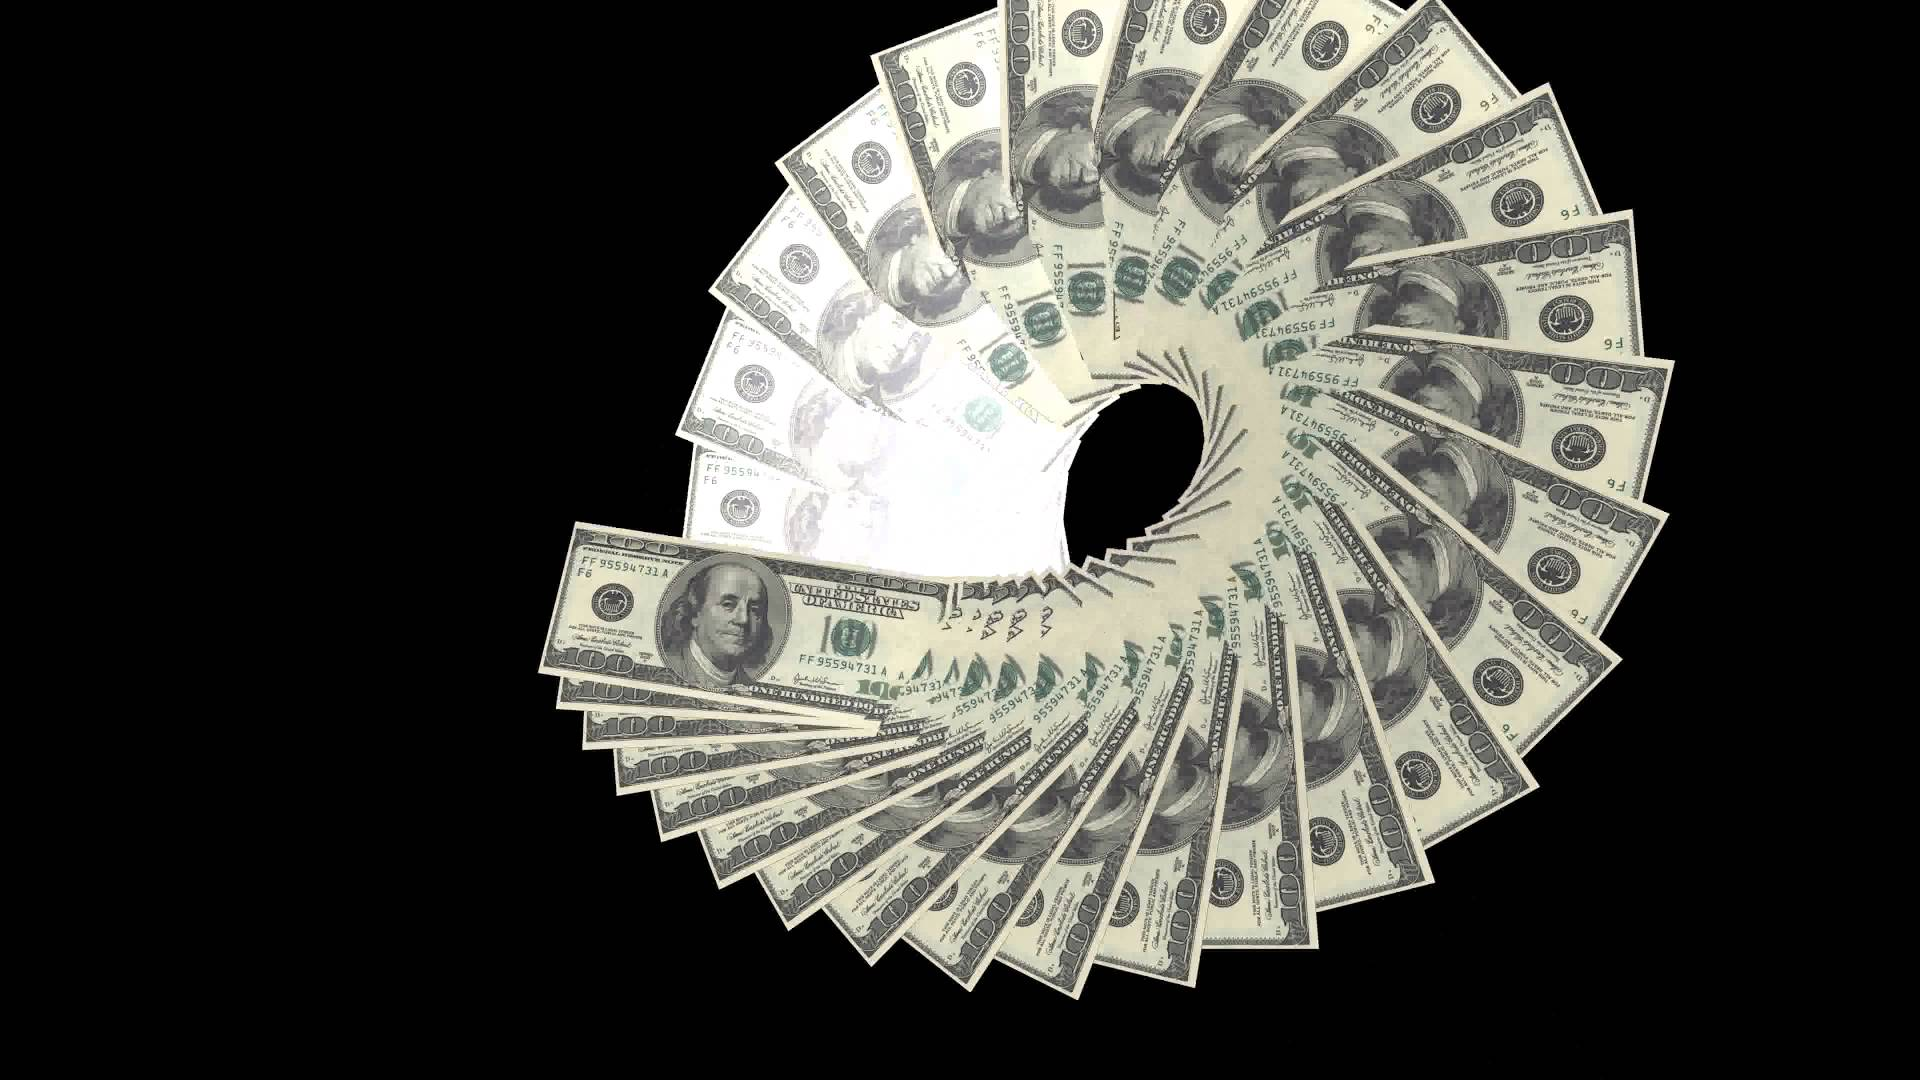 Money 4K Wallpapers - Top Free Money 4K Backgrounds - WallpaperAccess